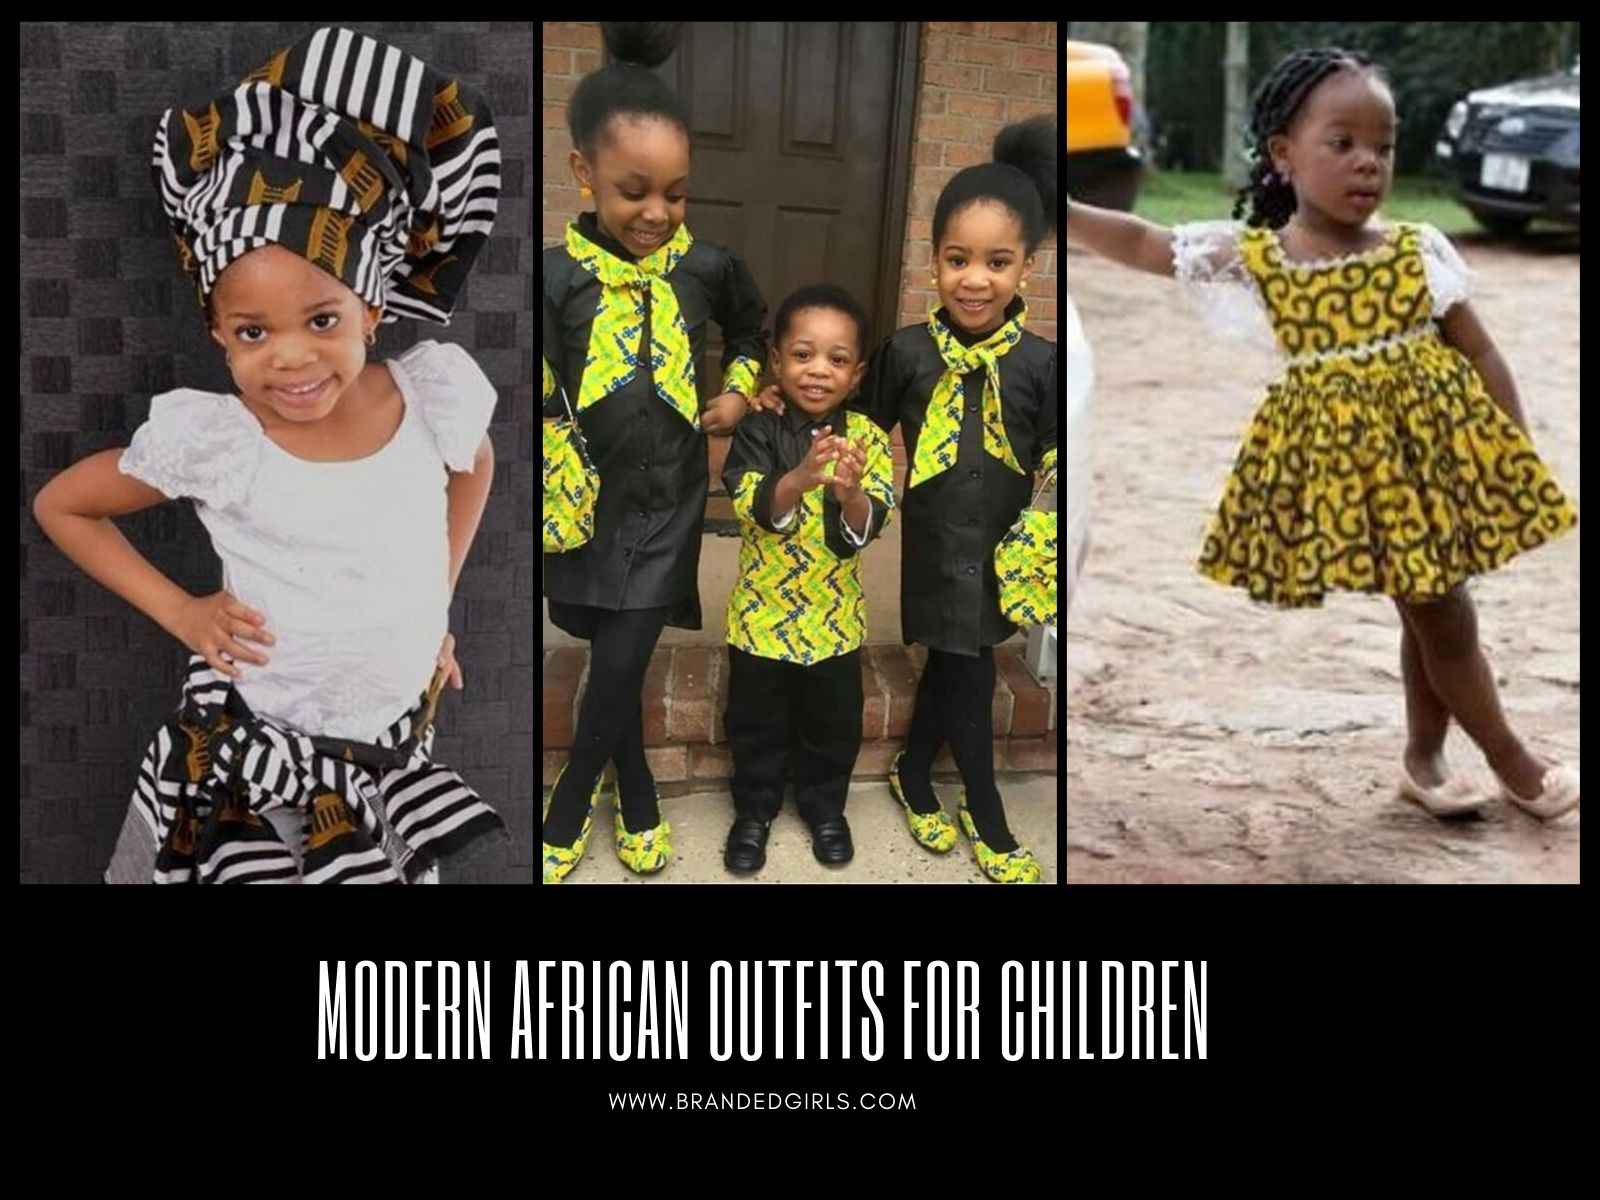 Modern-African-Outfits-for-Children Cute African Outfits- 20 Modern African Outfits for Children